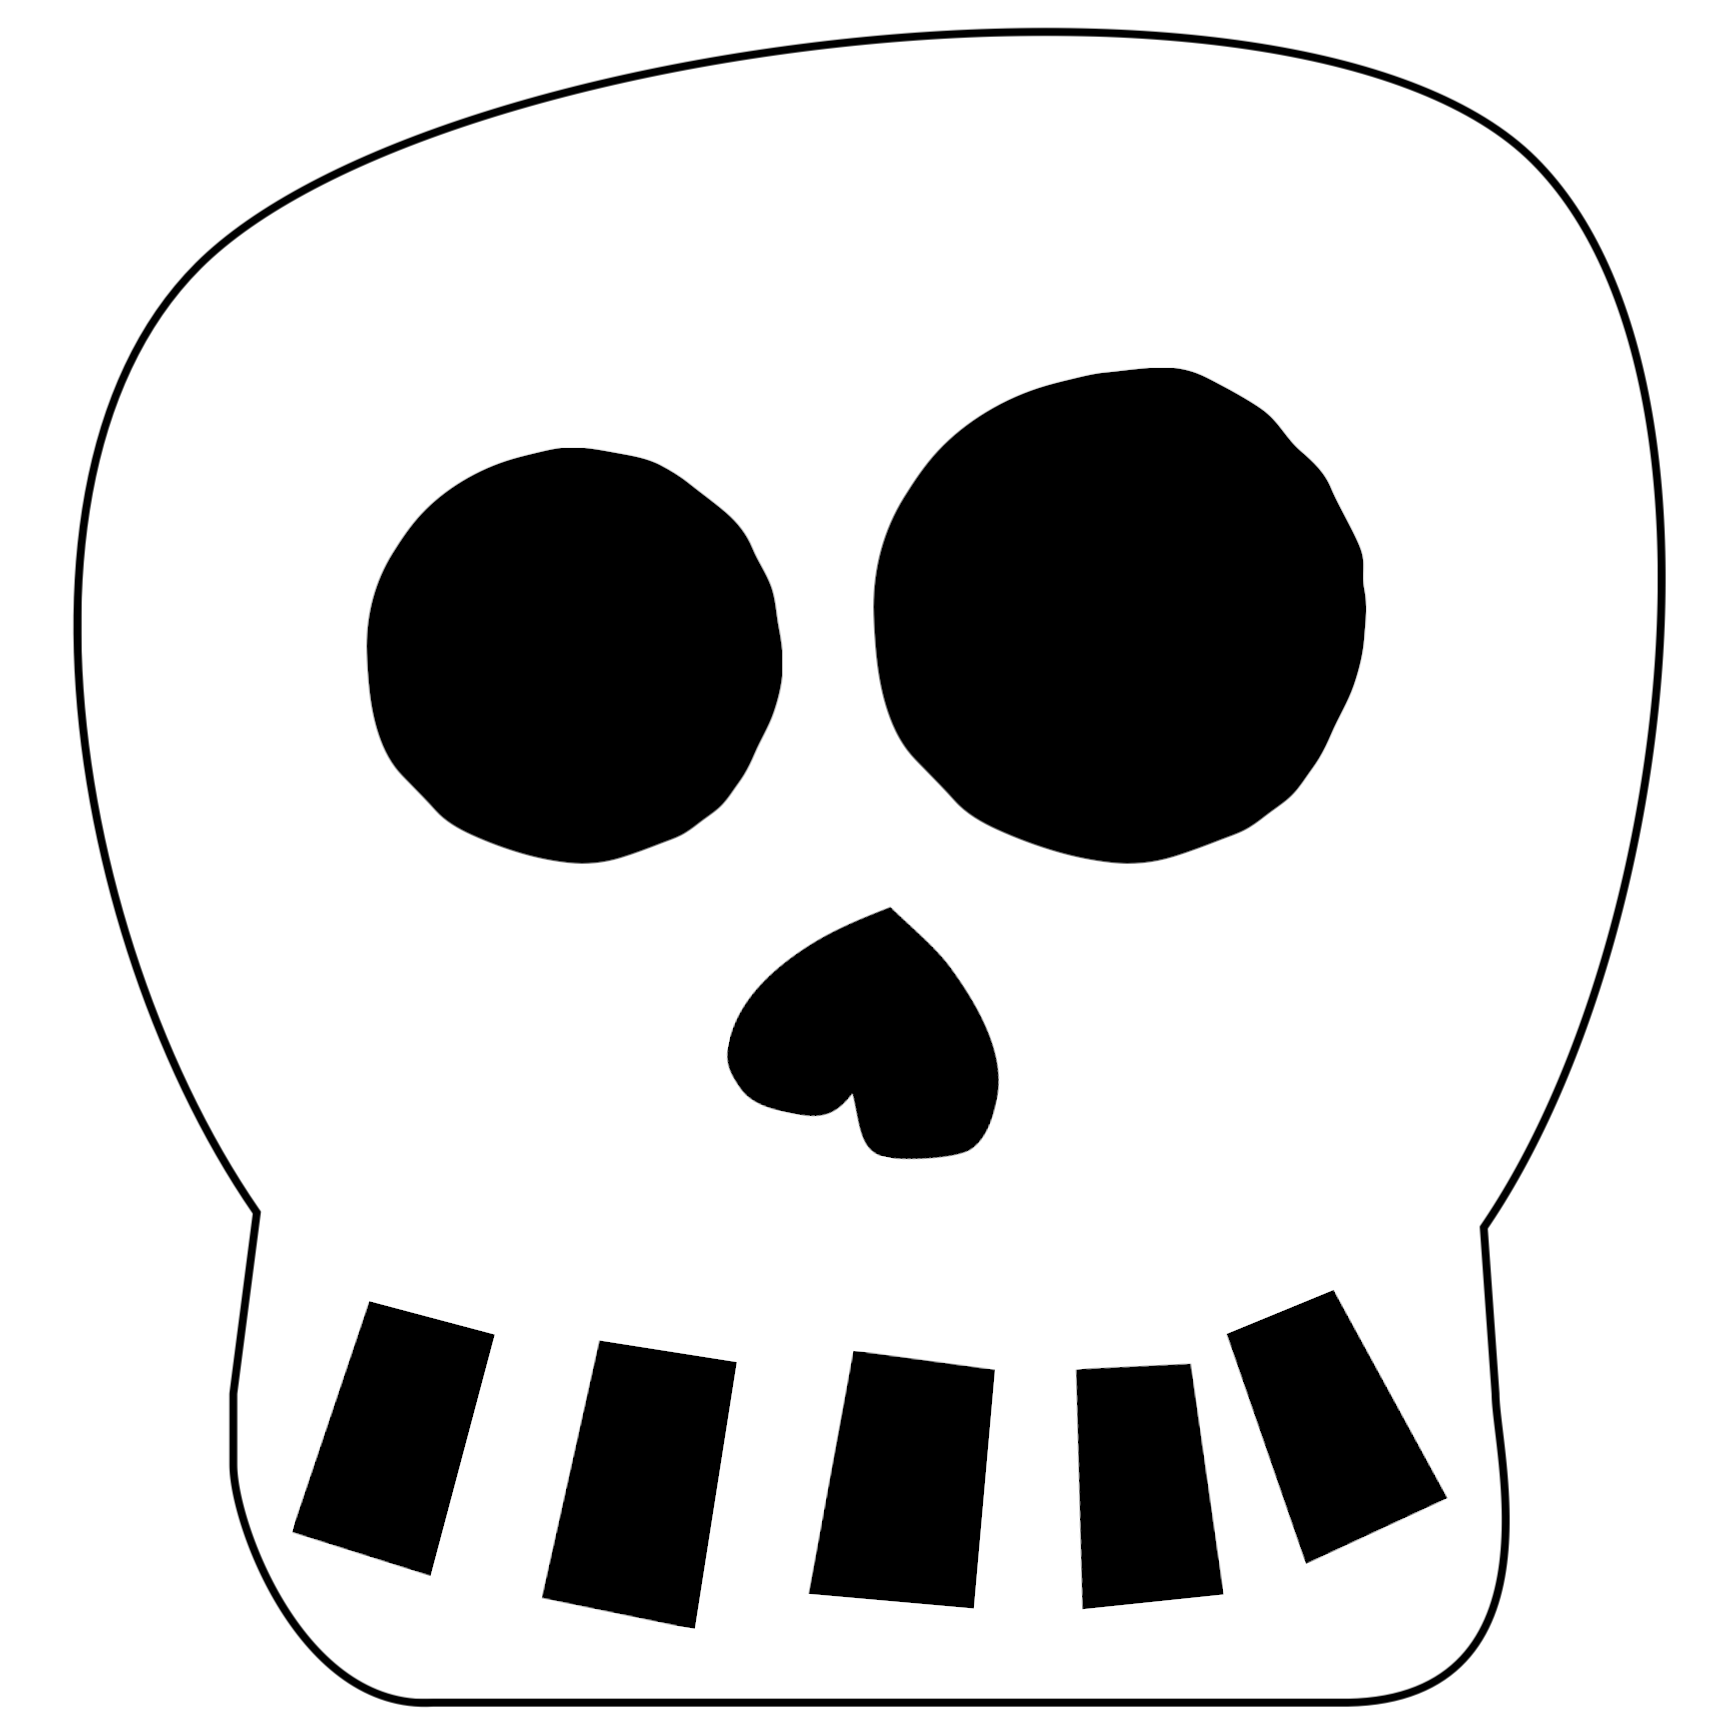 Free Printable Halloween Skull Decoration Banner - Paper ...